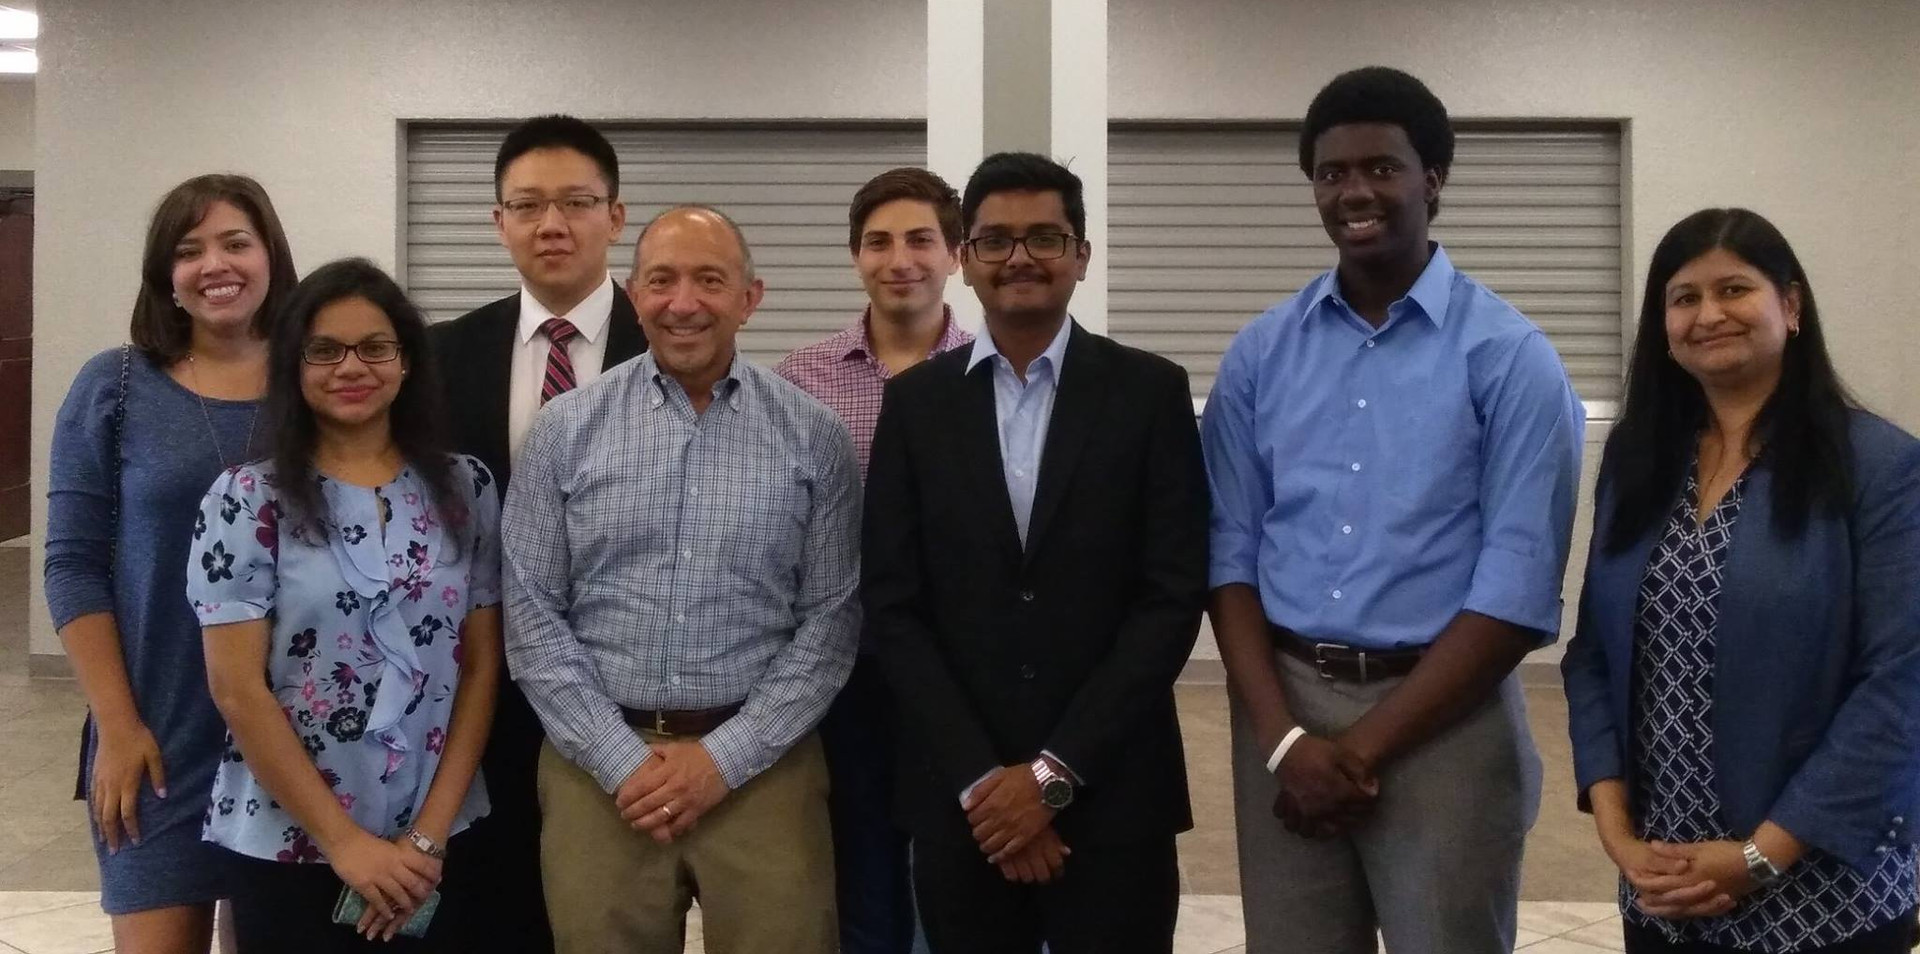 Students with the City Mayor